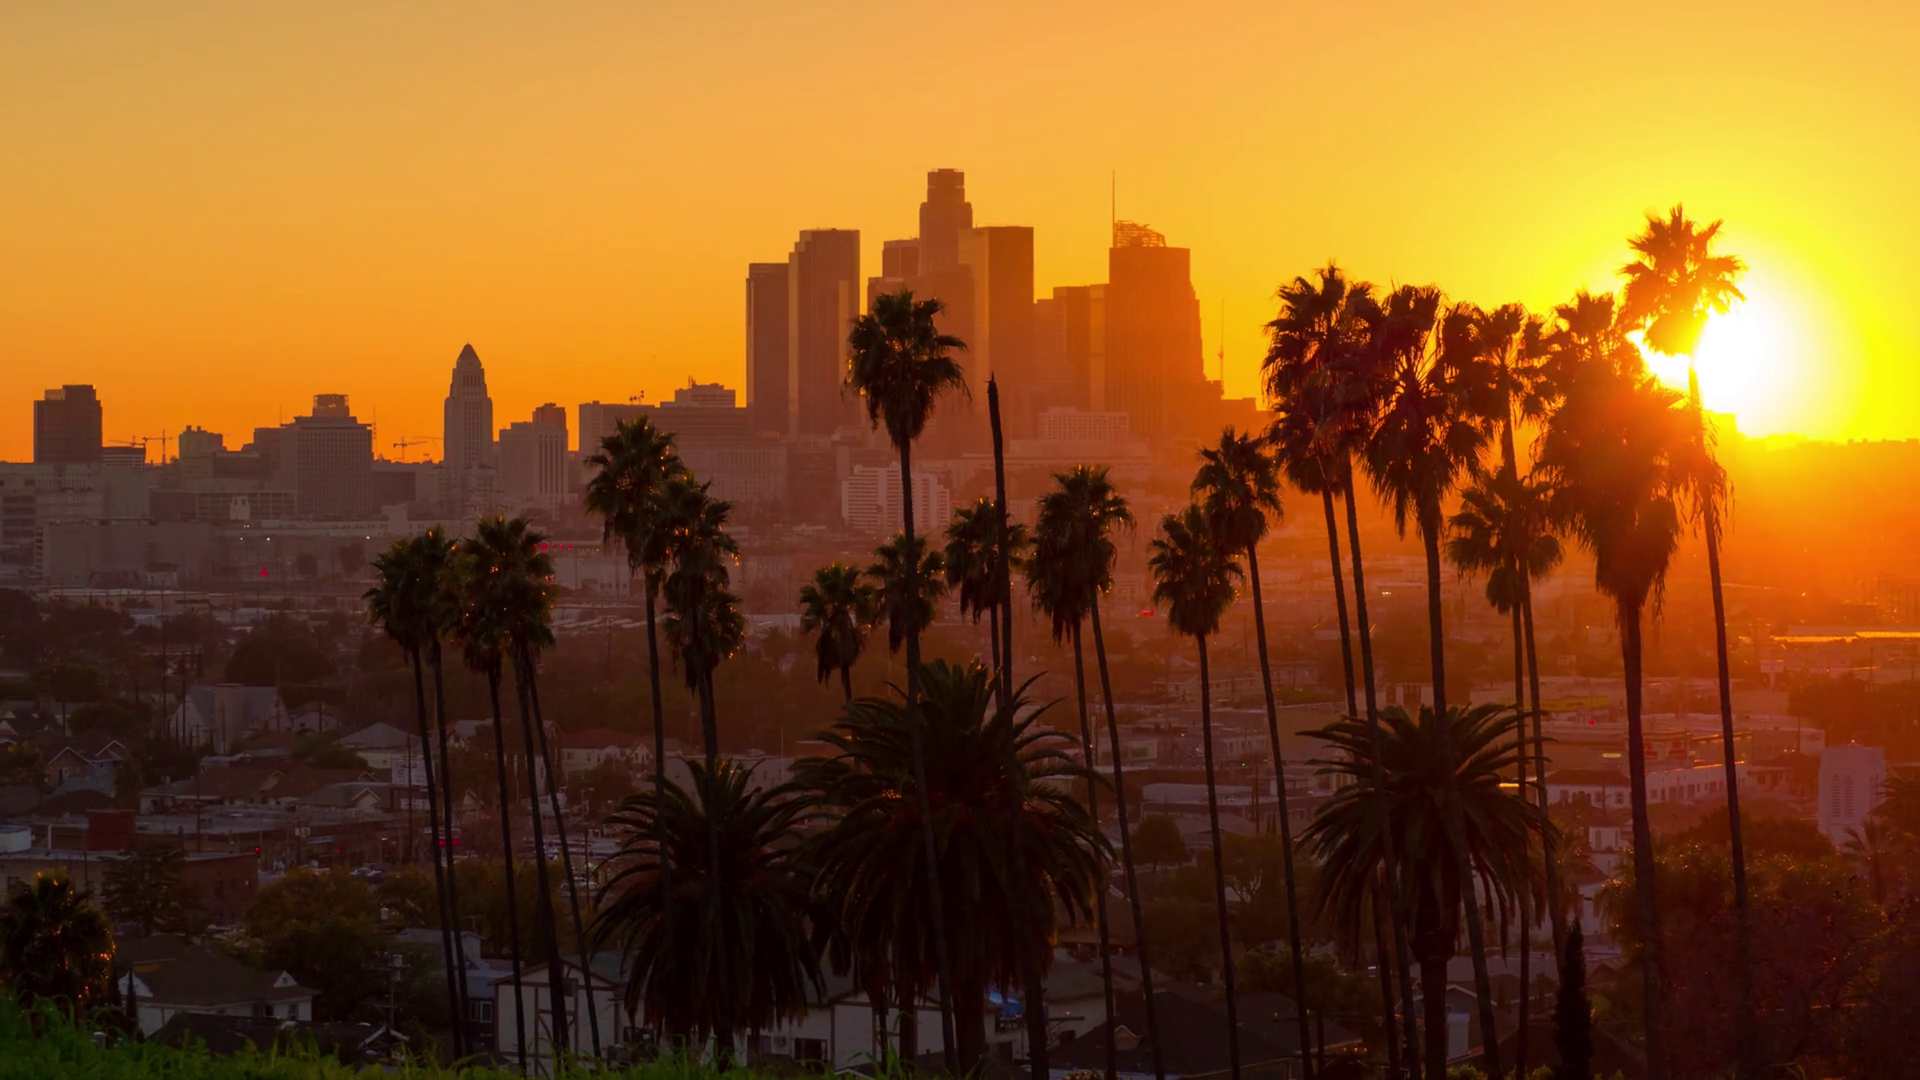 Scenic Sunset To Night Transition Zoom Out From City Of Los